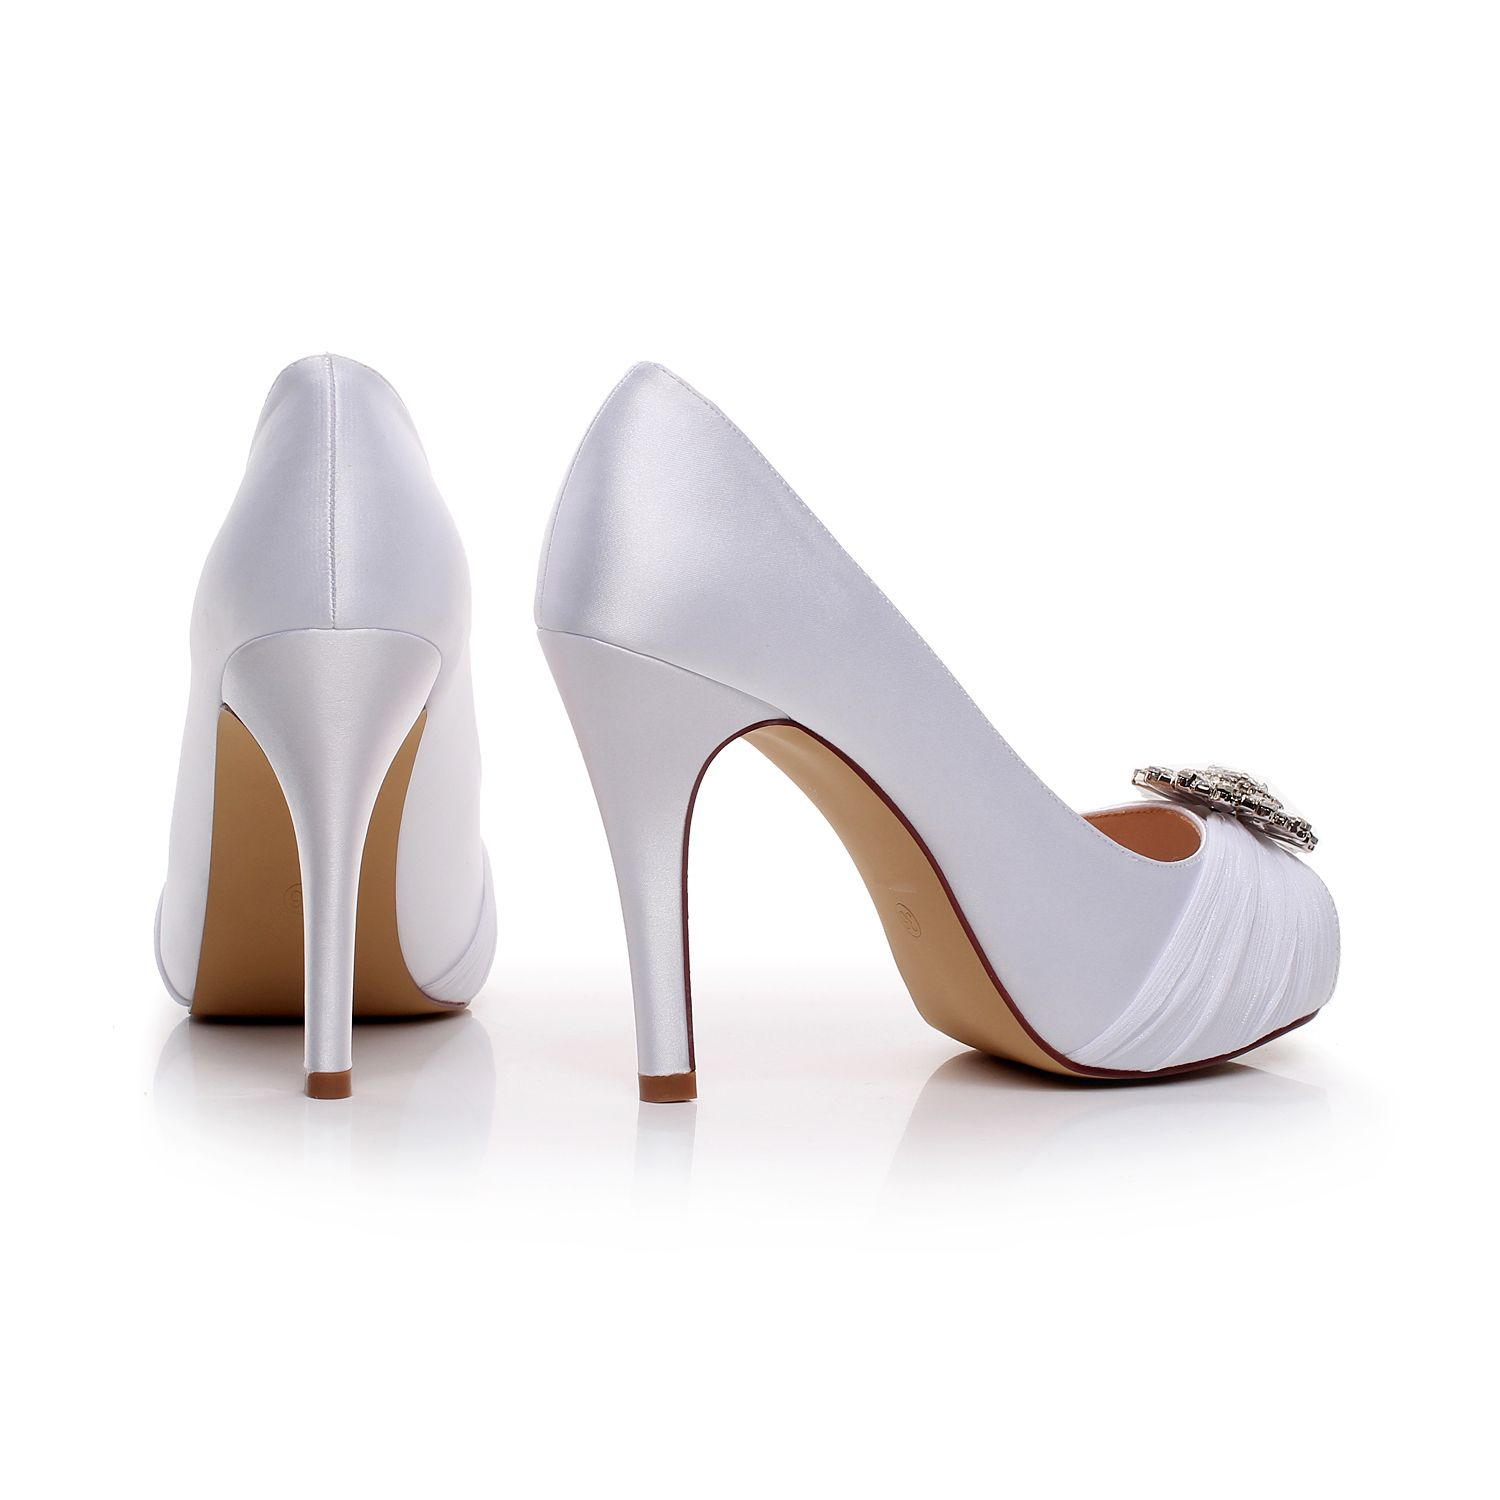 "satin Heel measures approximately 4.5 inches"" bridal shoes heel high : 4inch wedding shoes for bride Fashion Design Dress Shoes for Party,Wedding Unique Design Wedding shoes for Women Heels: 4.5inch - Size: from US5-10/EUR35-42"